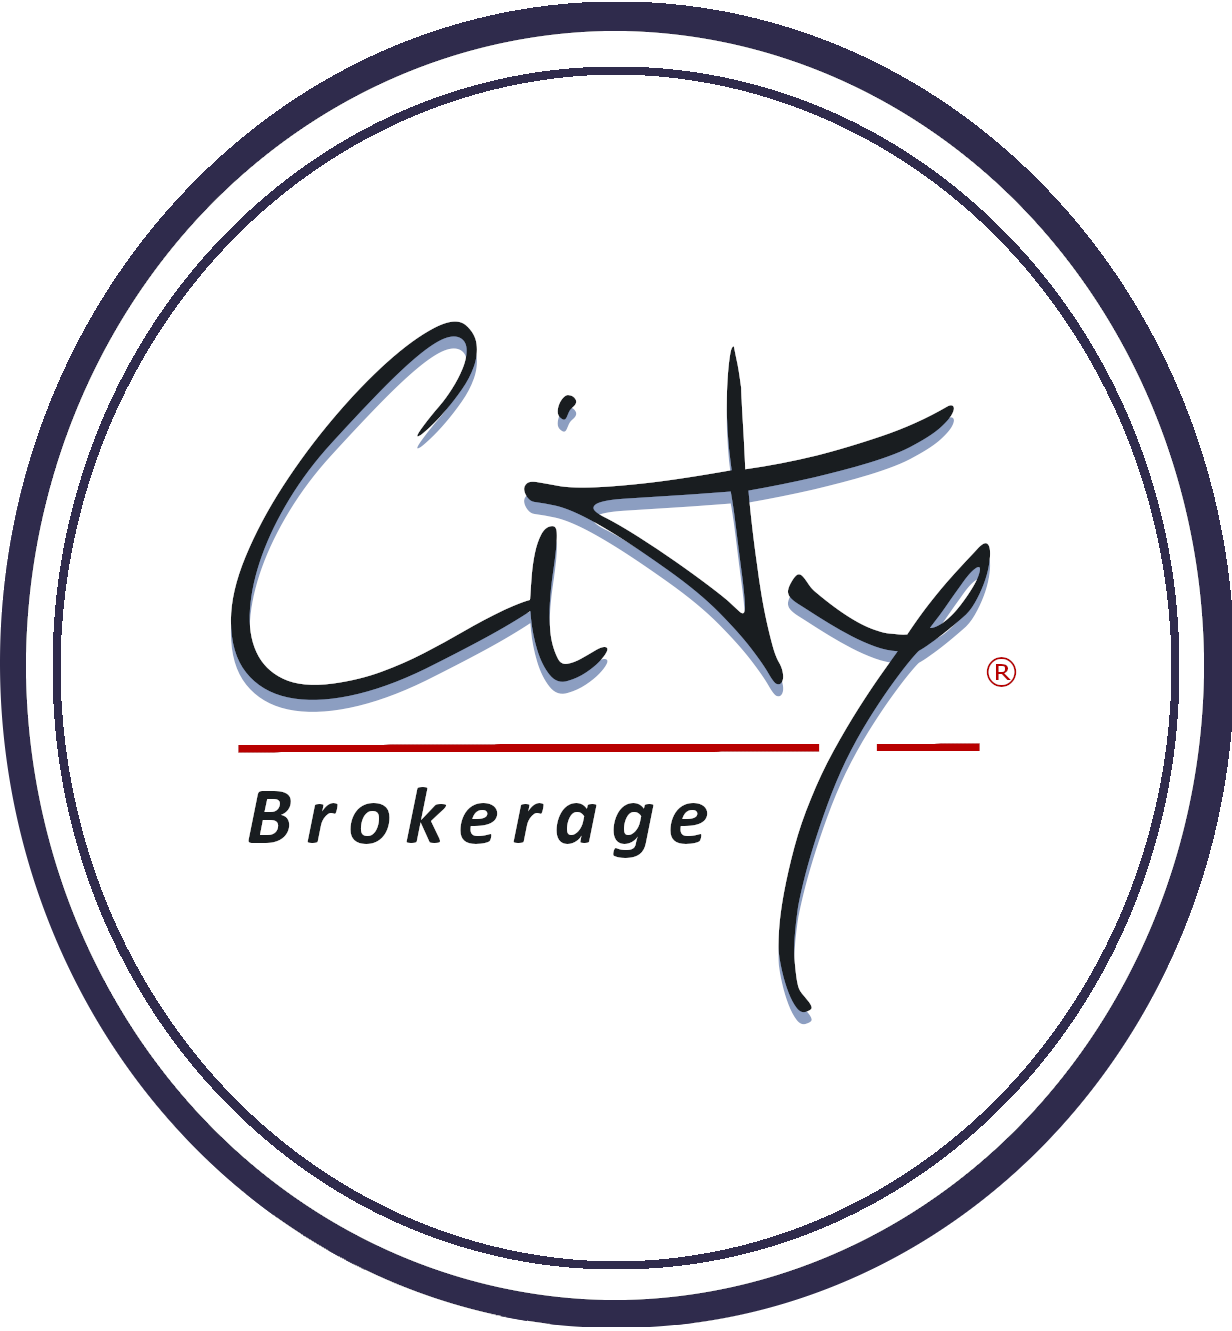 City Brokerage